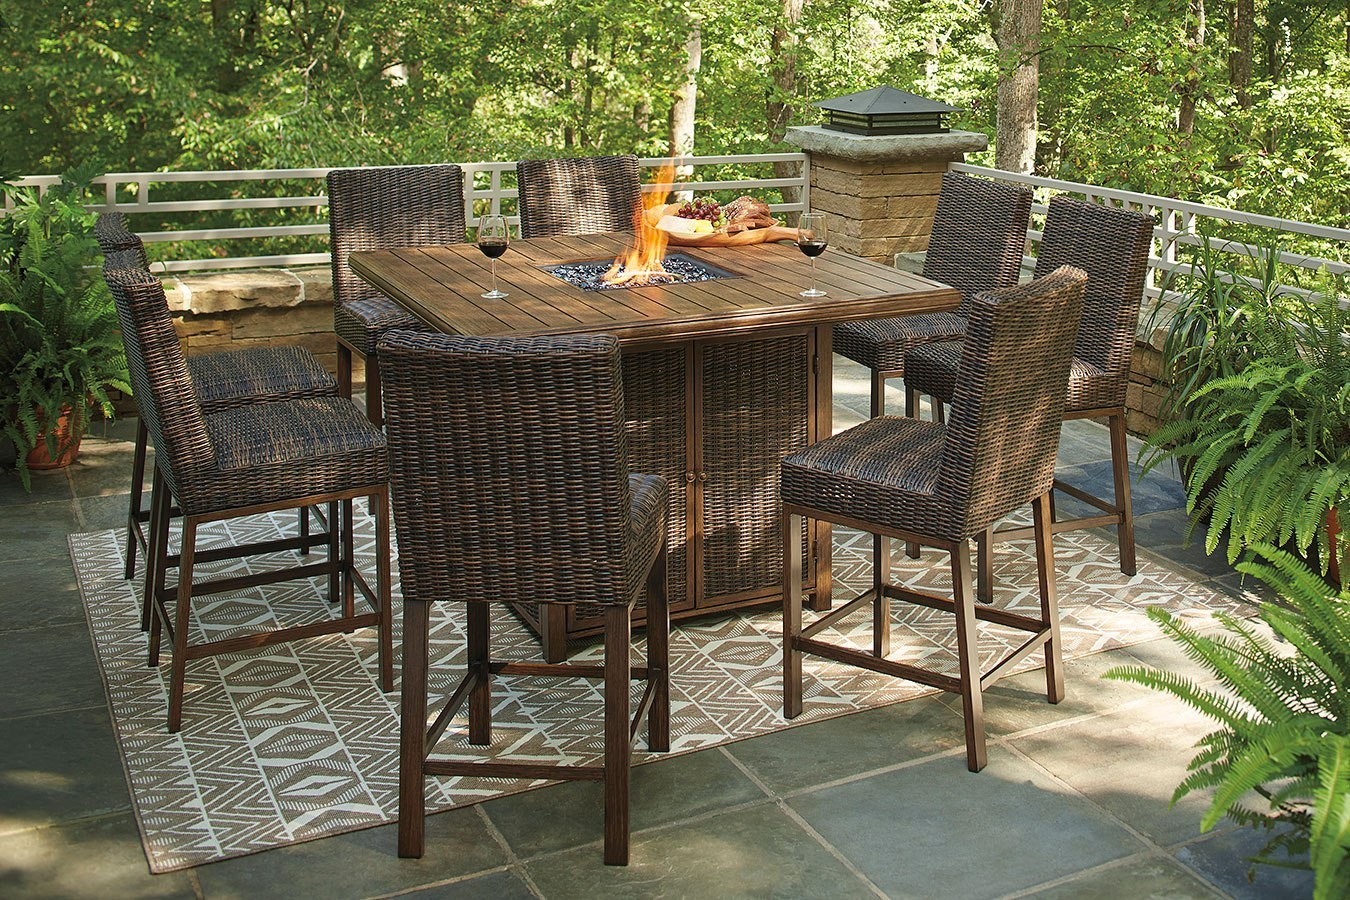 Surprising Paradise Trail Outdoor Fire Pit Bar Table Set Home Interior And Landscaping Spoatsignezvosmurscom